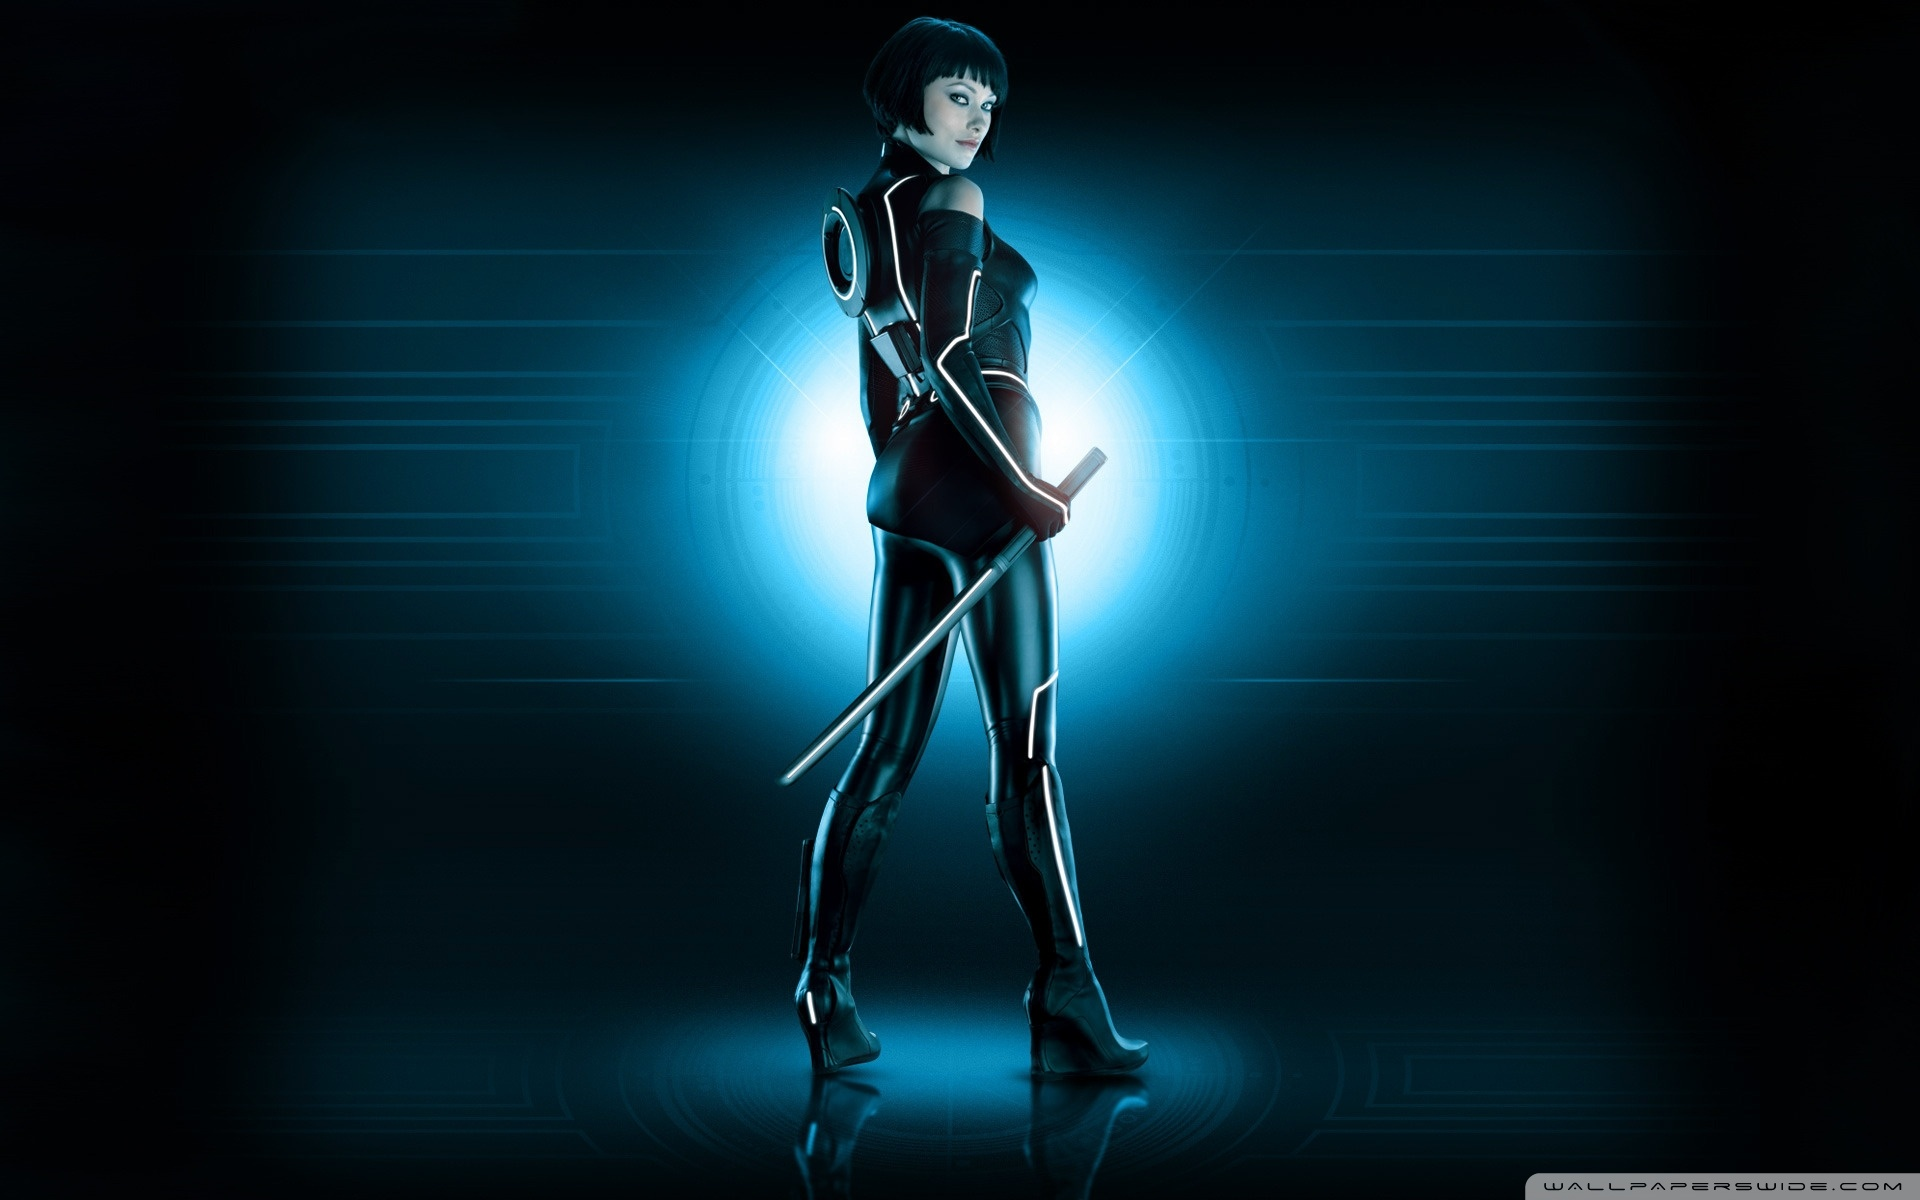 tron_-legacy-wallpapers-30156-4594958.jpg